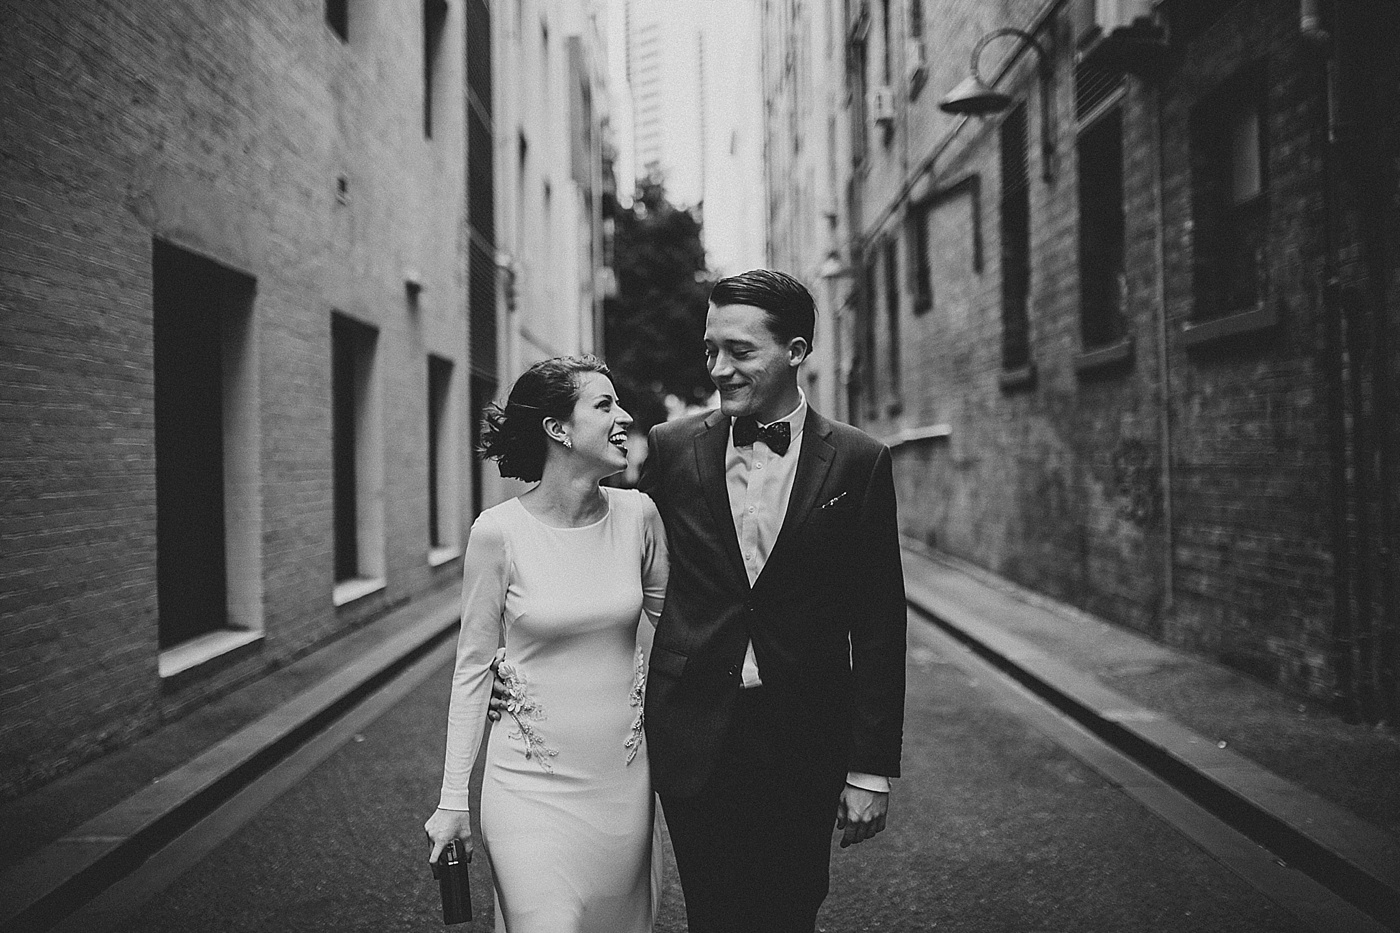 Emma&Morgan_Melbourne-Vintage-Elegant-Fun-CBD-Small-Elopement-Wedding_Melbourne-Wedding-Photography-18